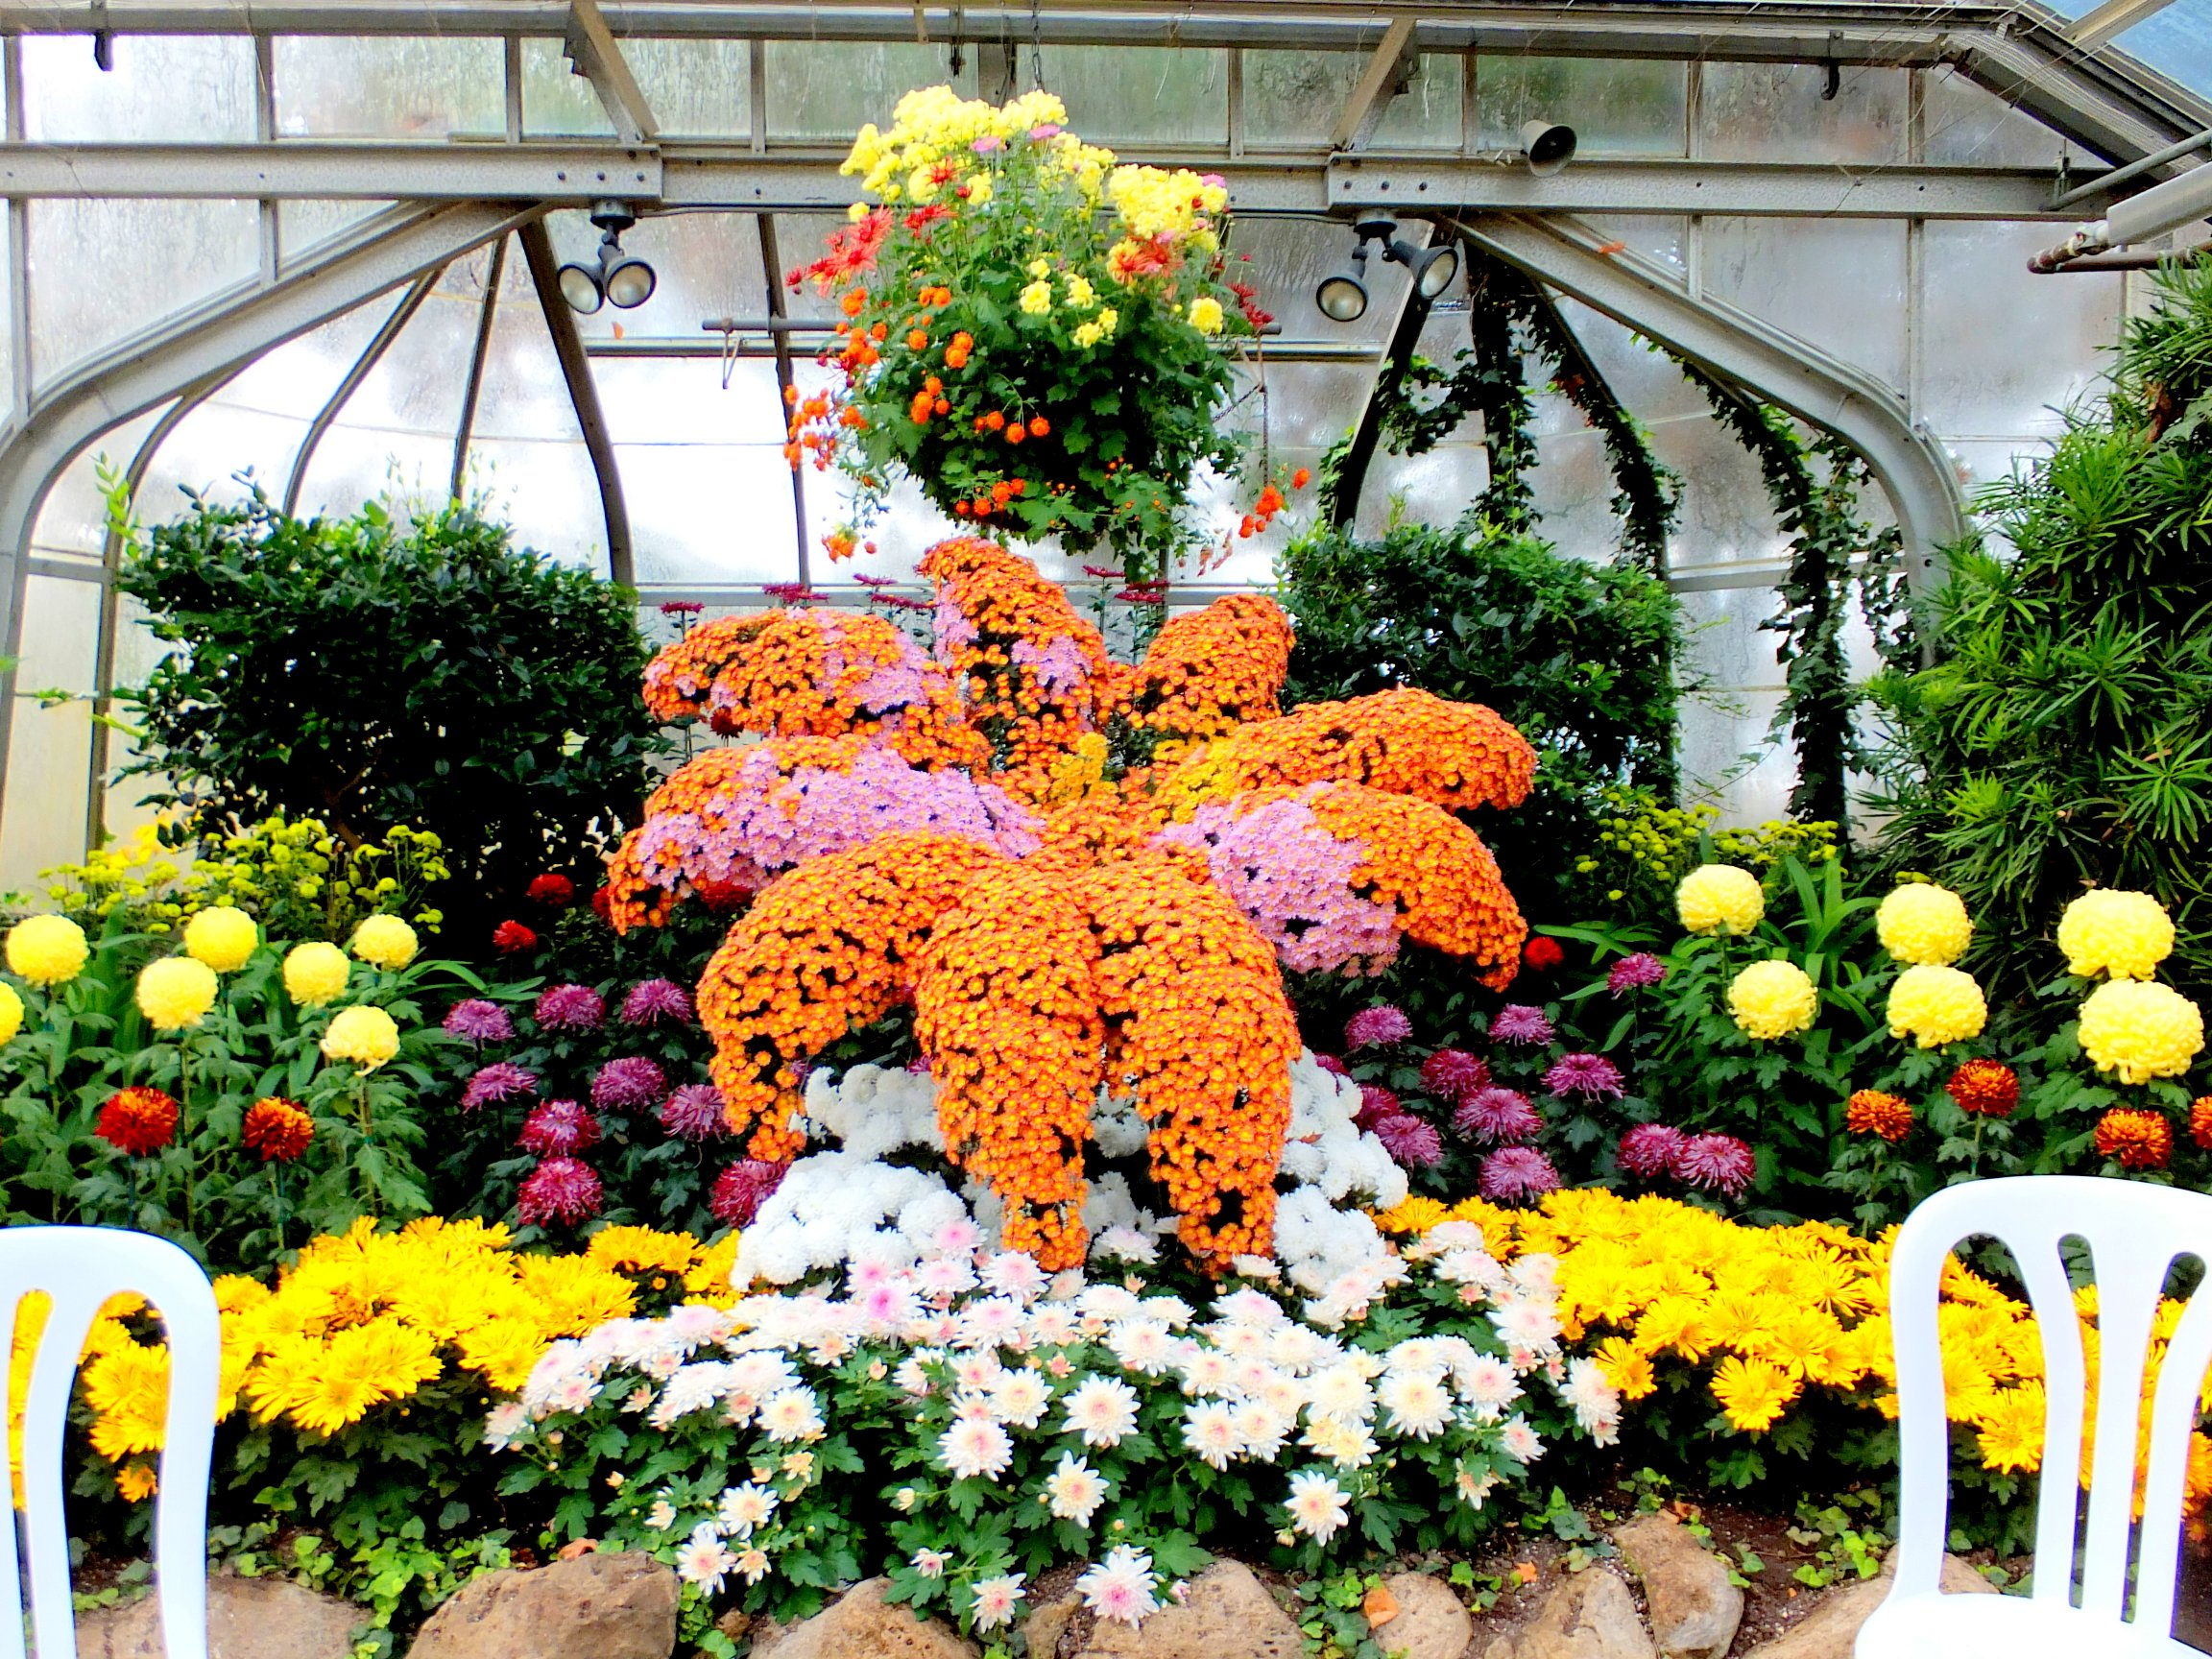 The Centennial Park Conservatory Chrysanthemum Show Photo by I Lee, 9 Nov 2014